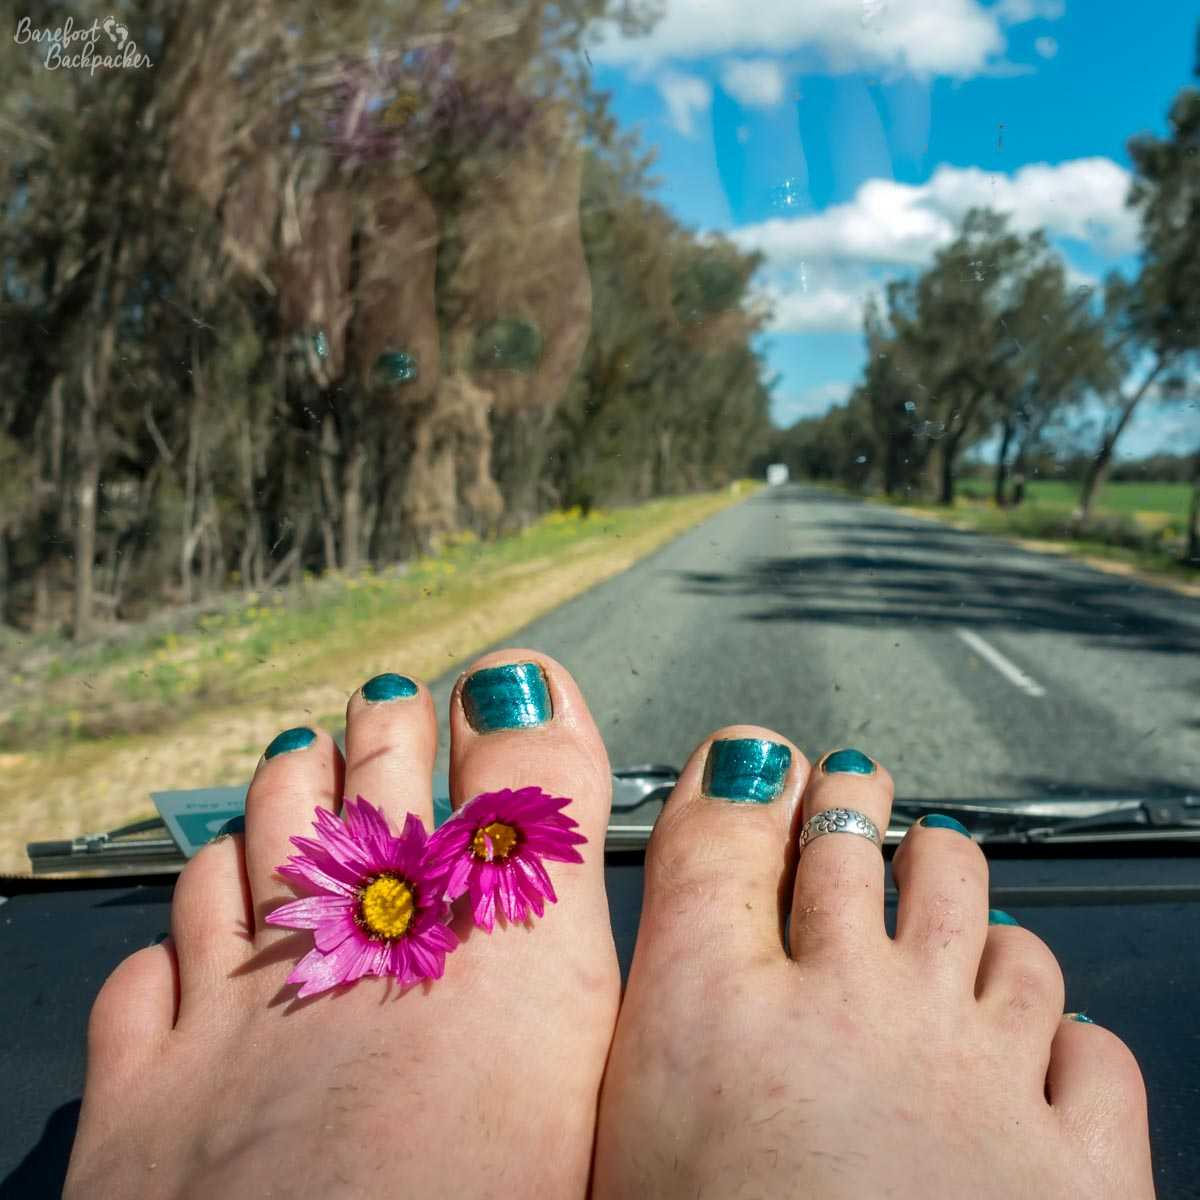 Bare feet on the dashboard of a car, driving through Western Australia. The toenails are painted in a kind of teal shade, and between the toes are a couple of pink wildflowers with yellow centres.